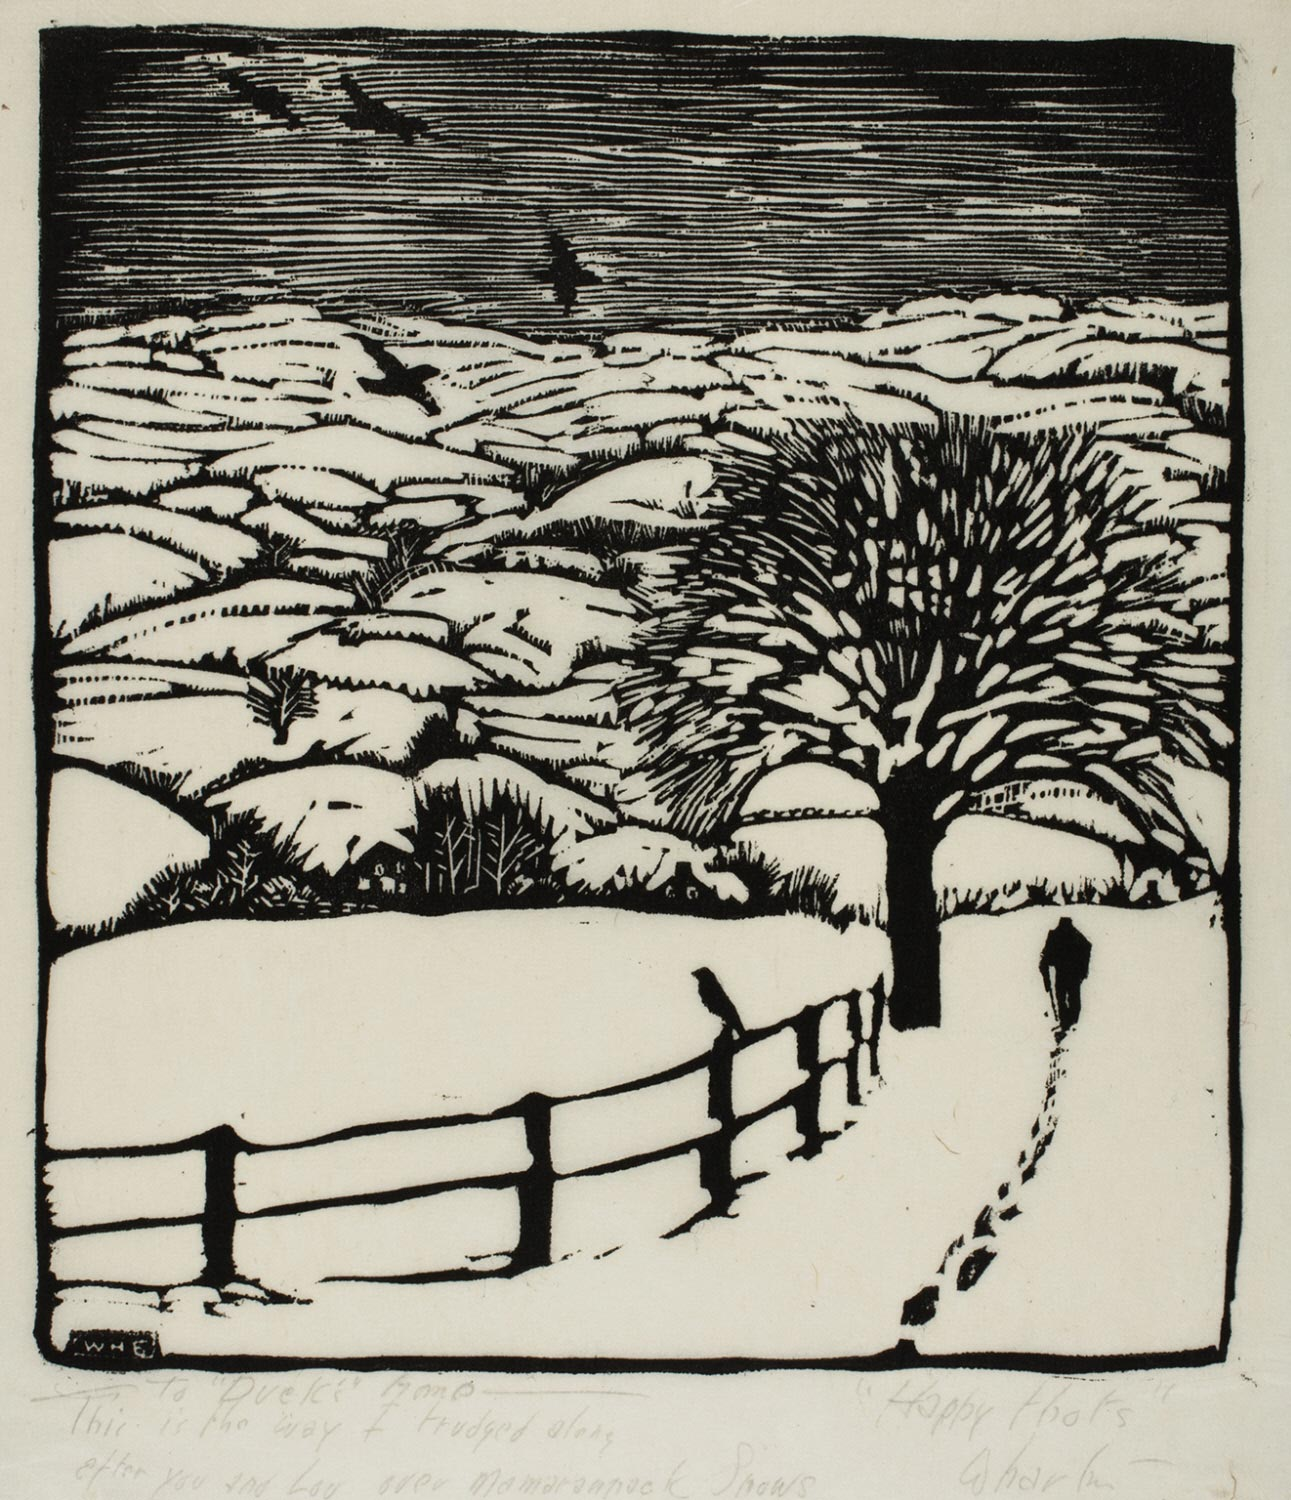 Trudging in the Snow (January)